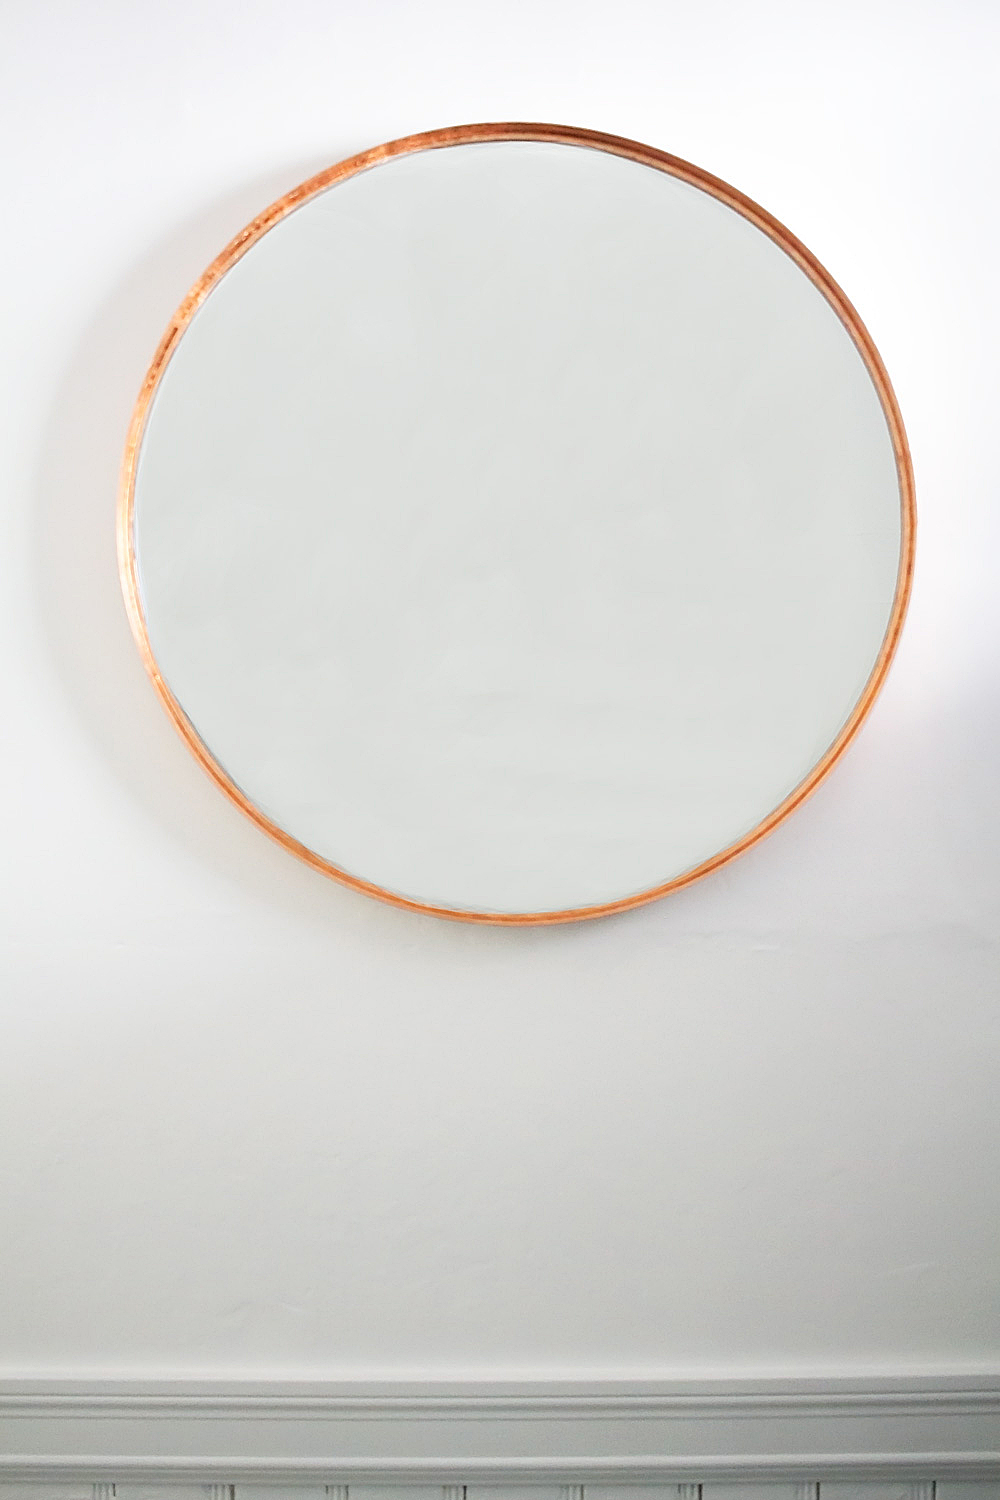 You can turn any plain mirror into a DIY copper mirror on a budget using just copper leaf and a paintbrush. The perfect low-budget craft for a high-end look!